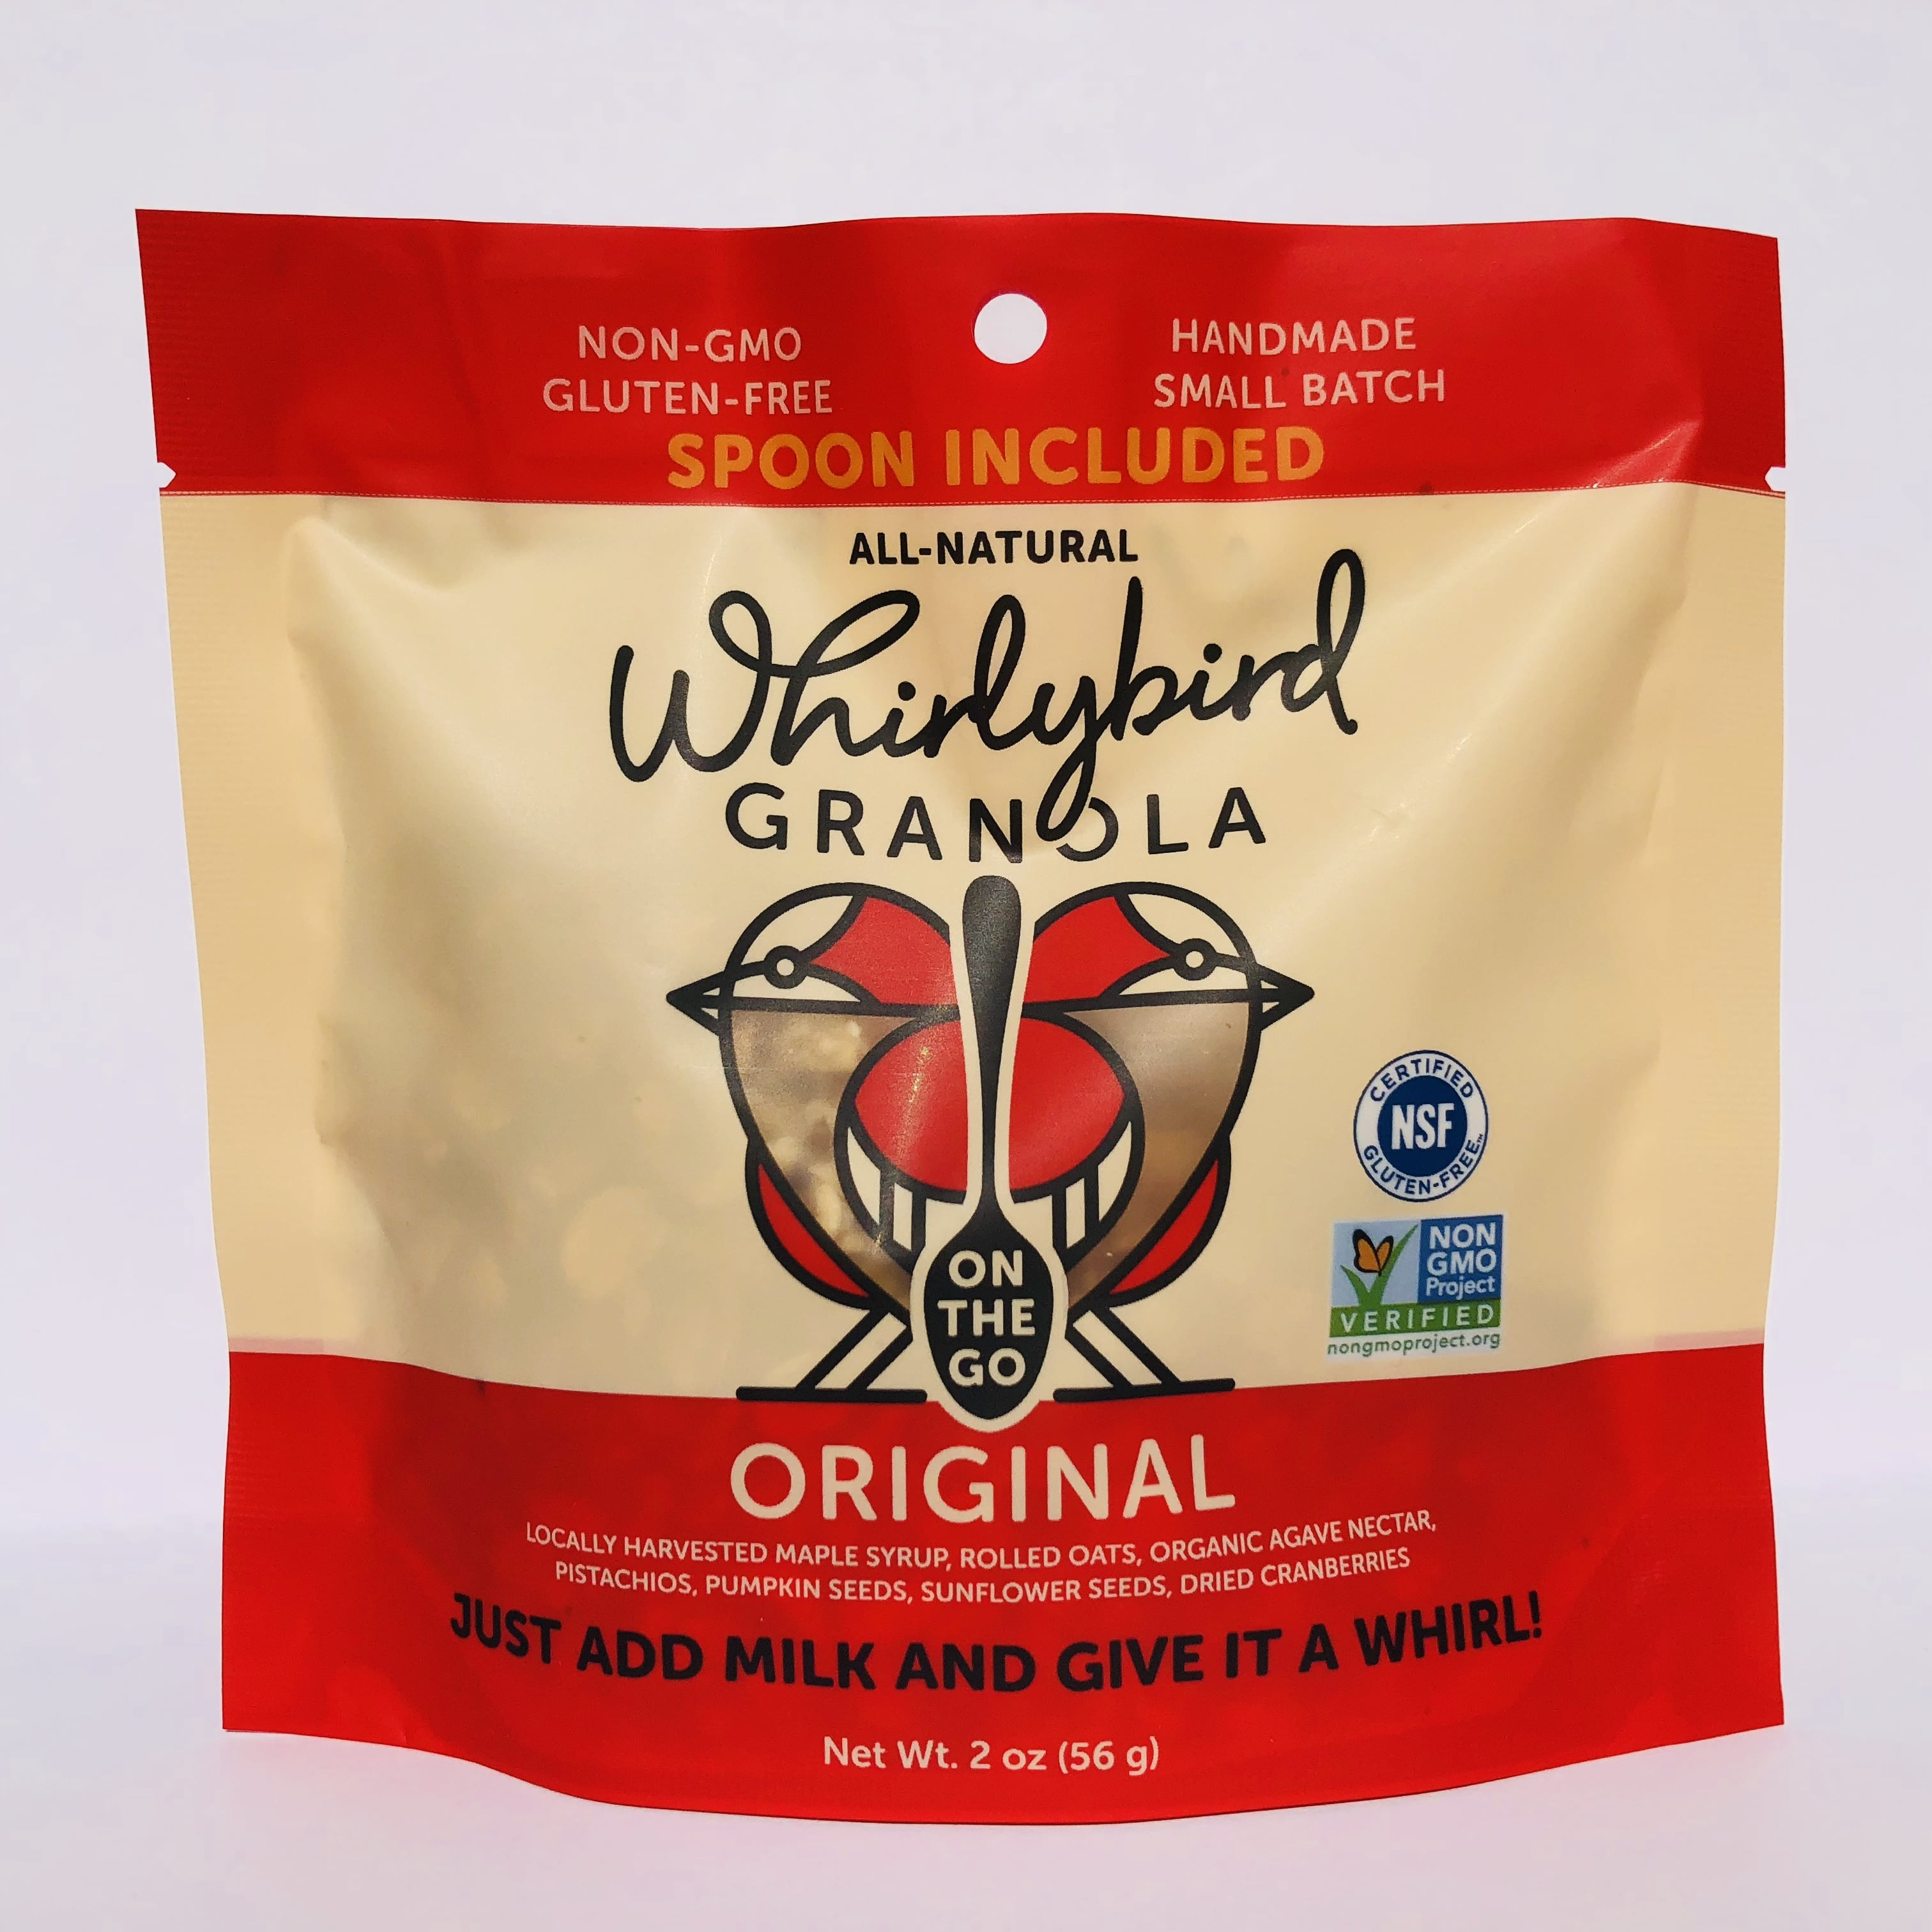 Whirlybird Granola Debuts Packaging for On-The-Go Consumer